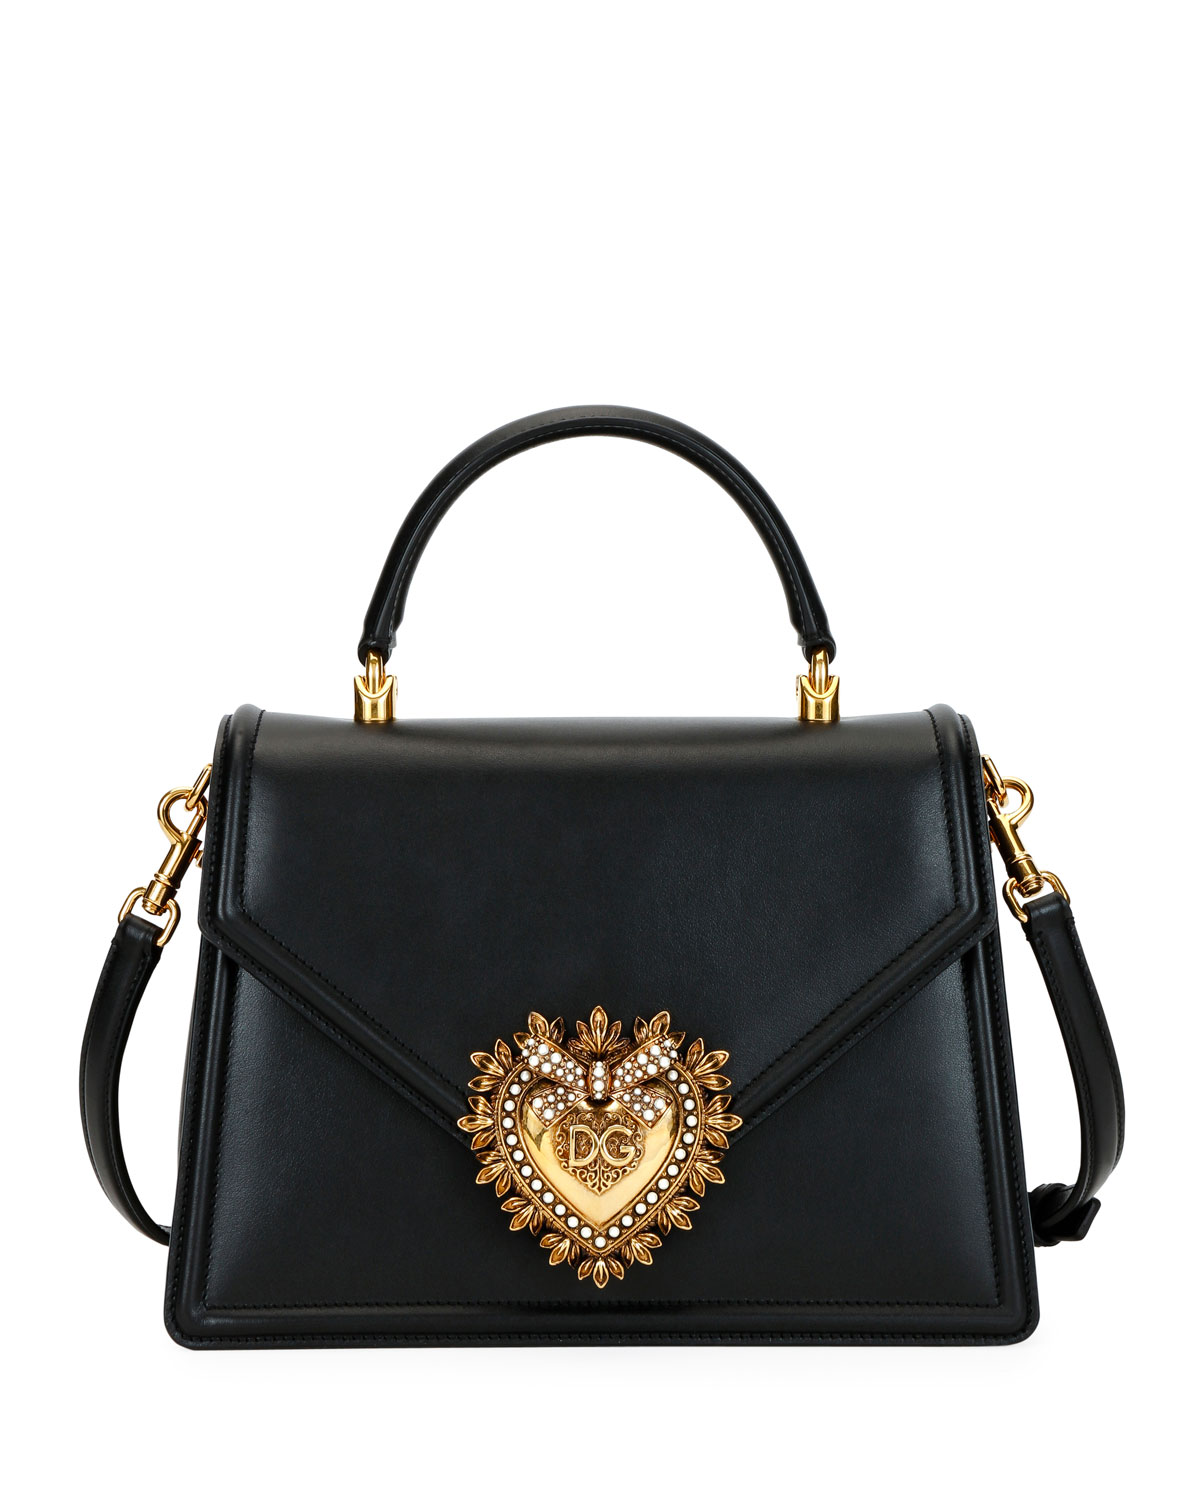 Devotion Leather Shoulder Bag by Dolce & Gabbana